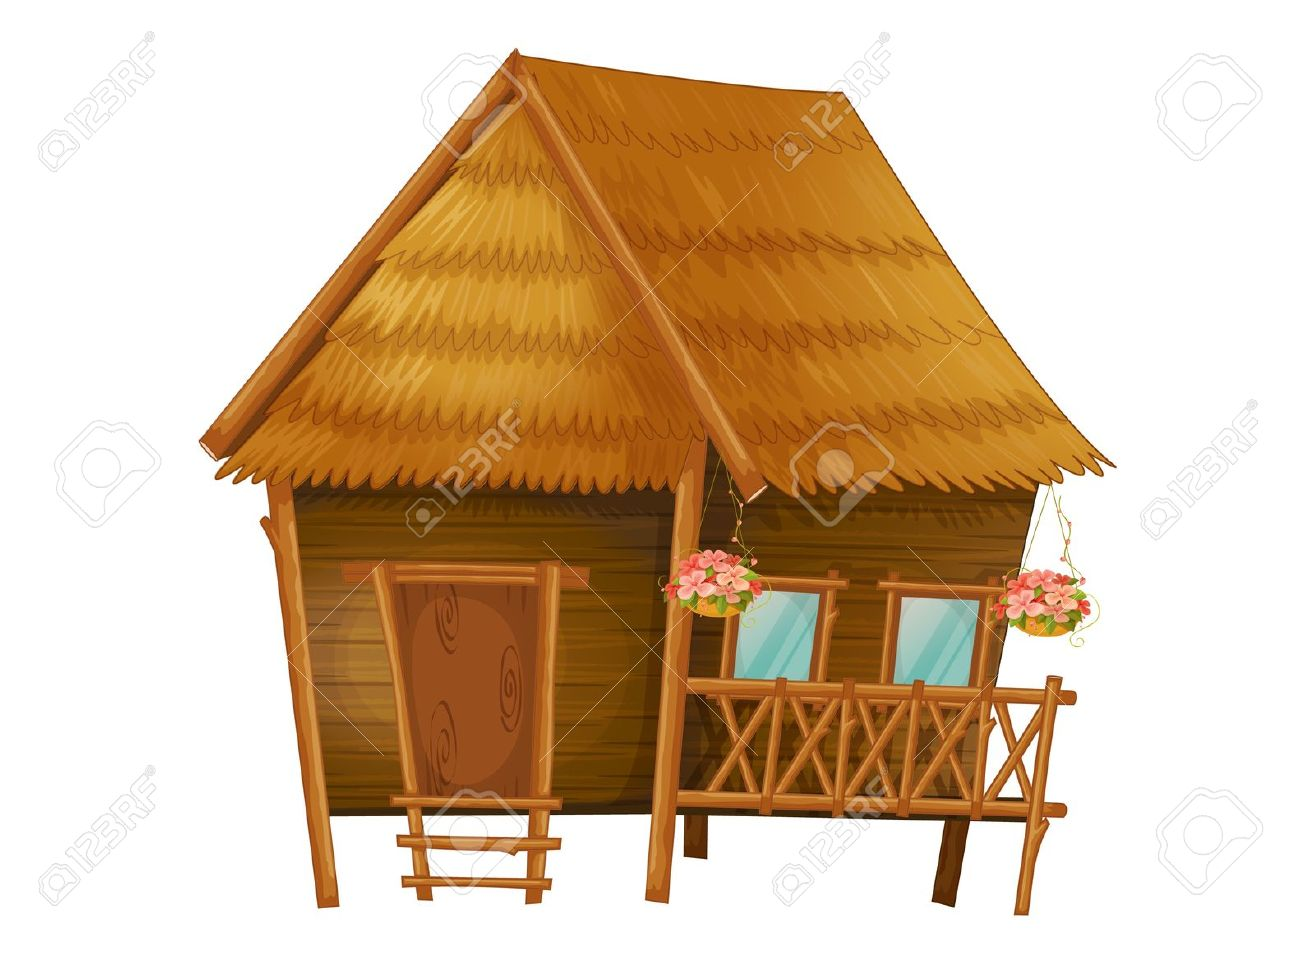 Shack clipart brown house Hut #15 clipart Hut drawings